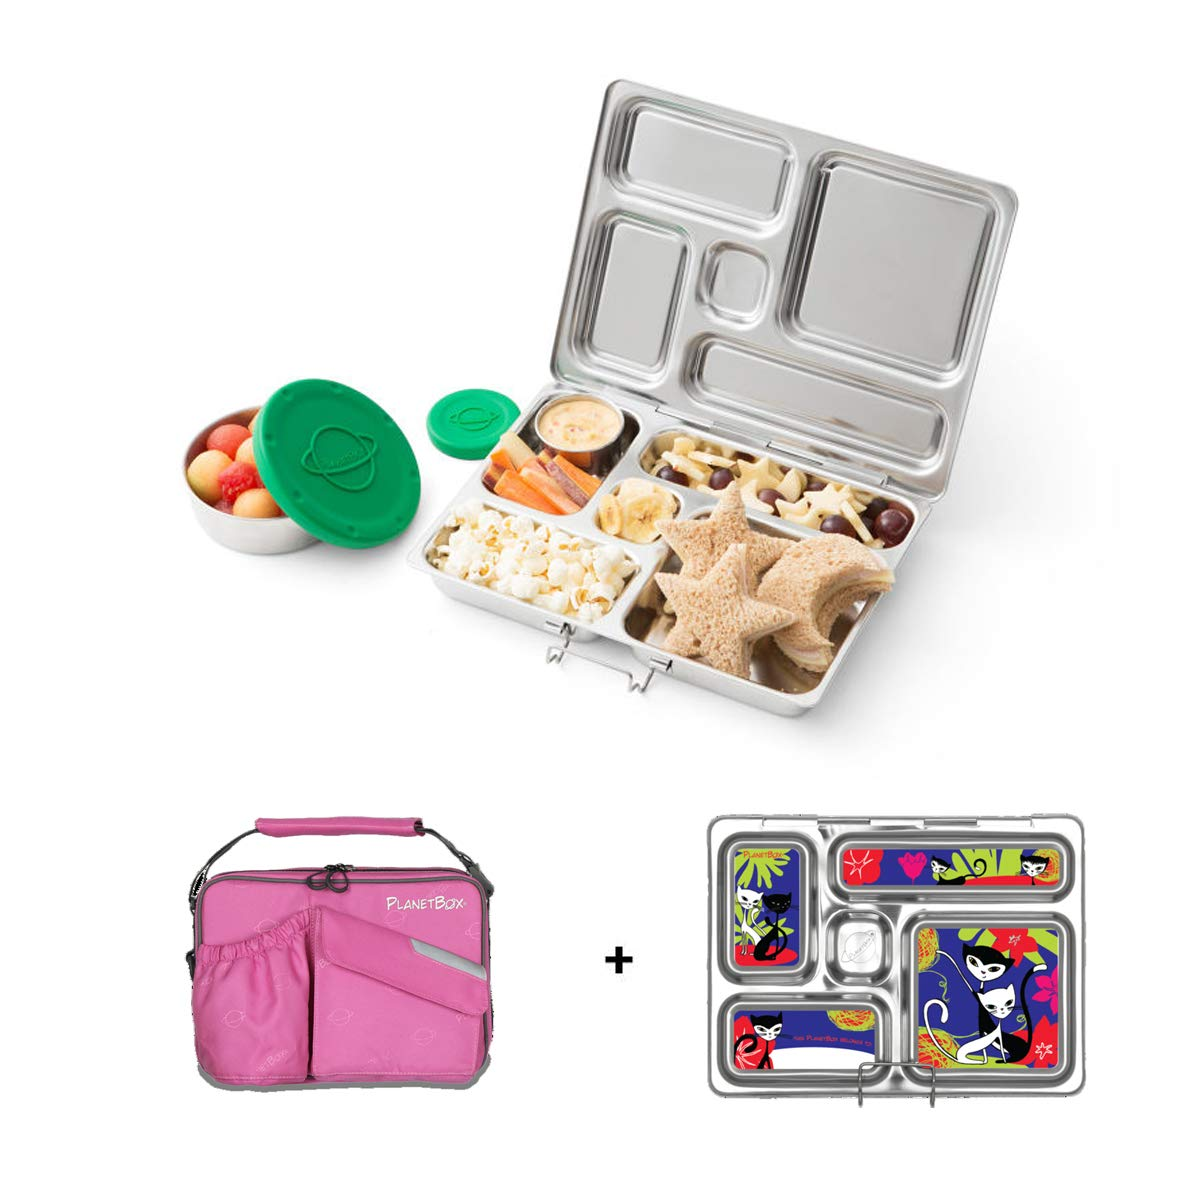 PlanetBox ROVER Eco-Friendly Stainless Steel Bento Lunch Box with 5 Compartments for Adults and Kids - Perfectly Pink Carry Bag with Retro Kitty Magnets